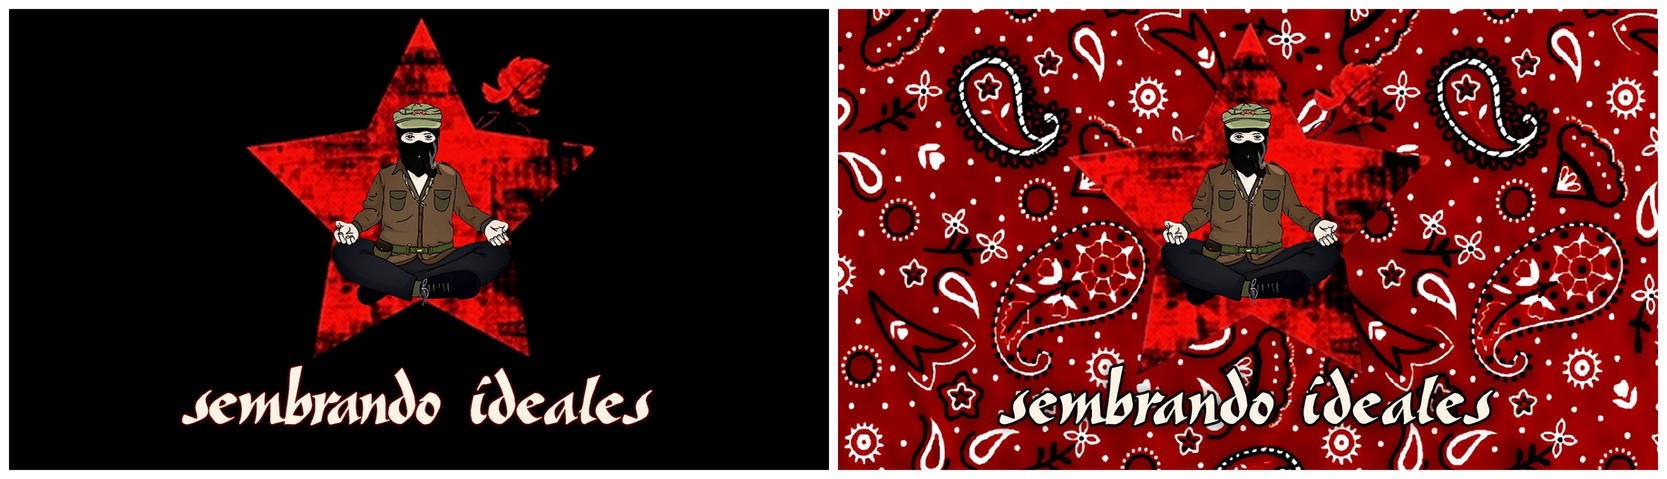 Marcos Red and Black - Wallpaper Pack by Quadraro